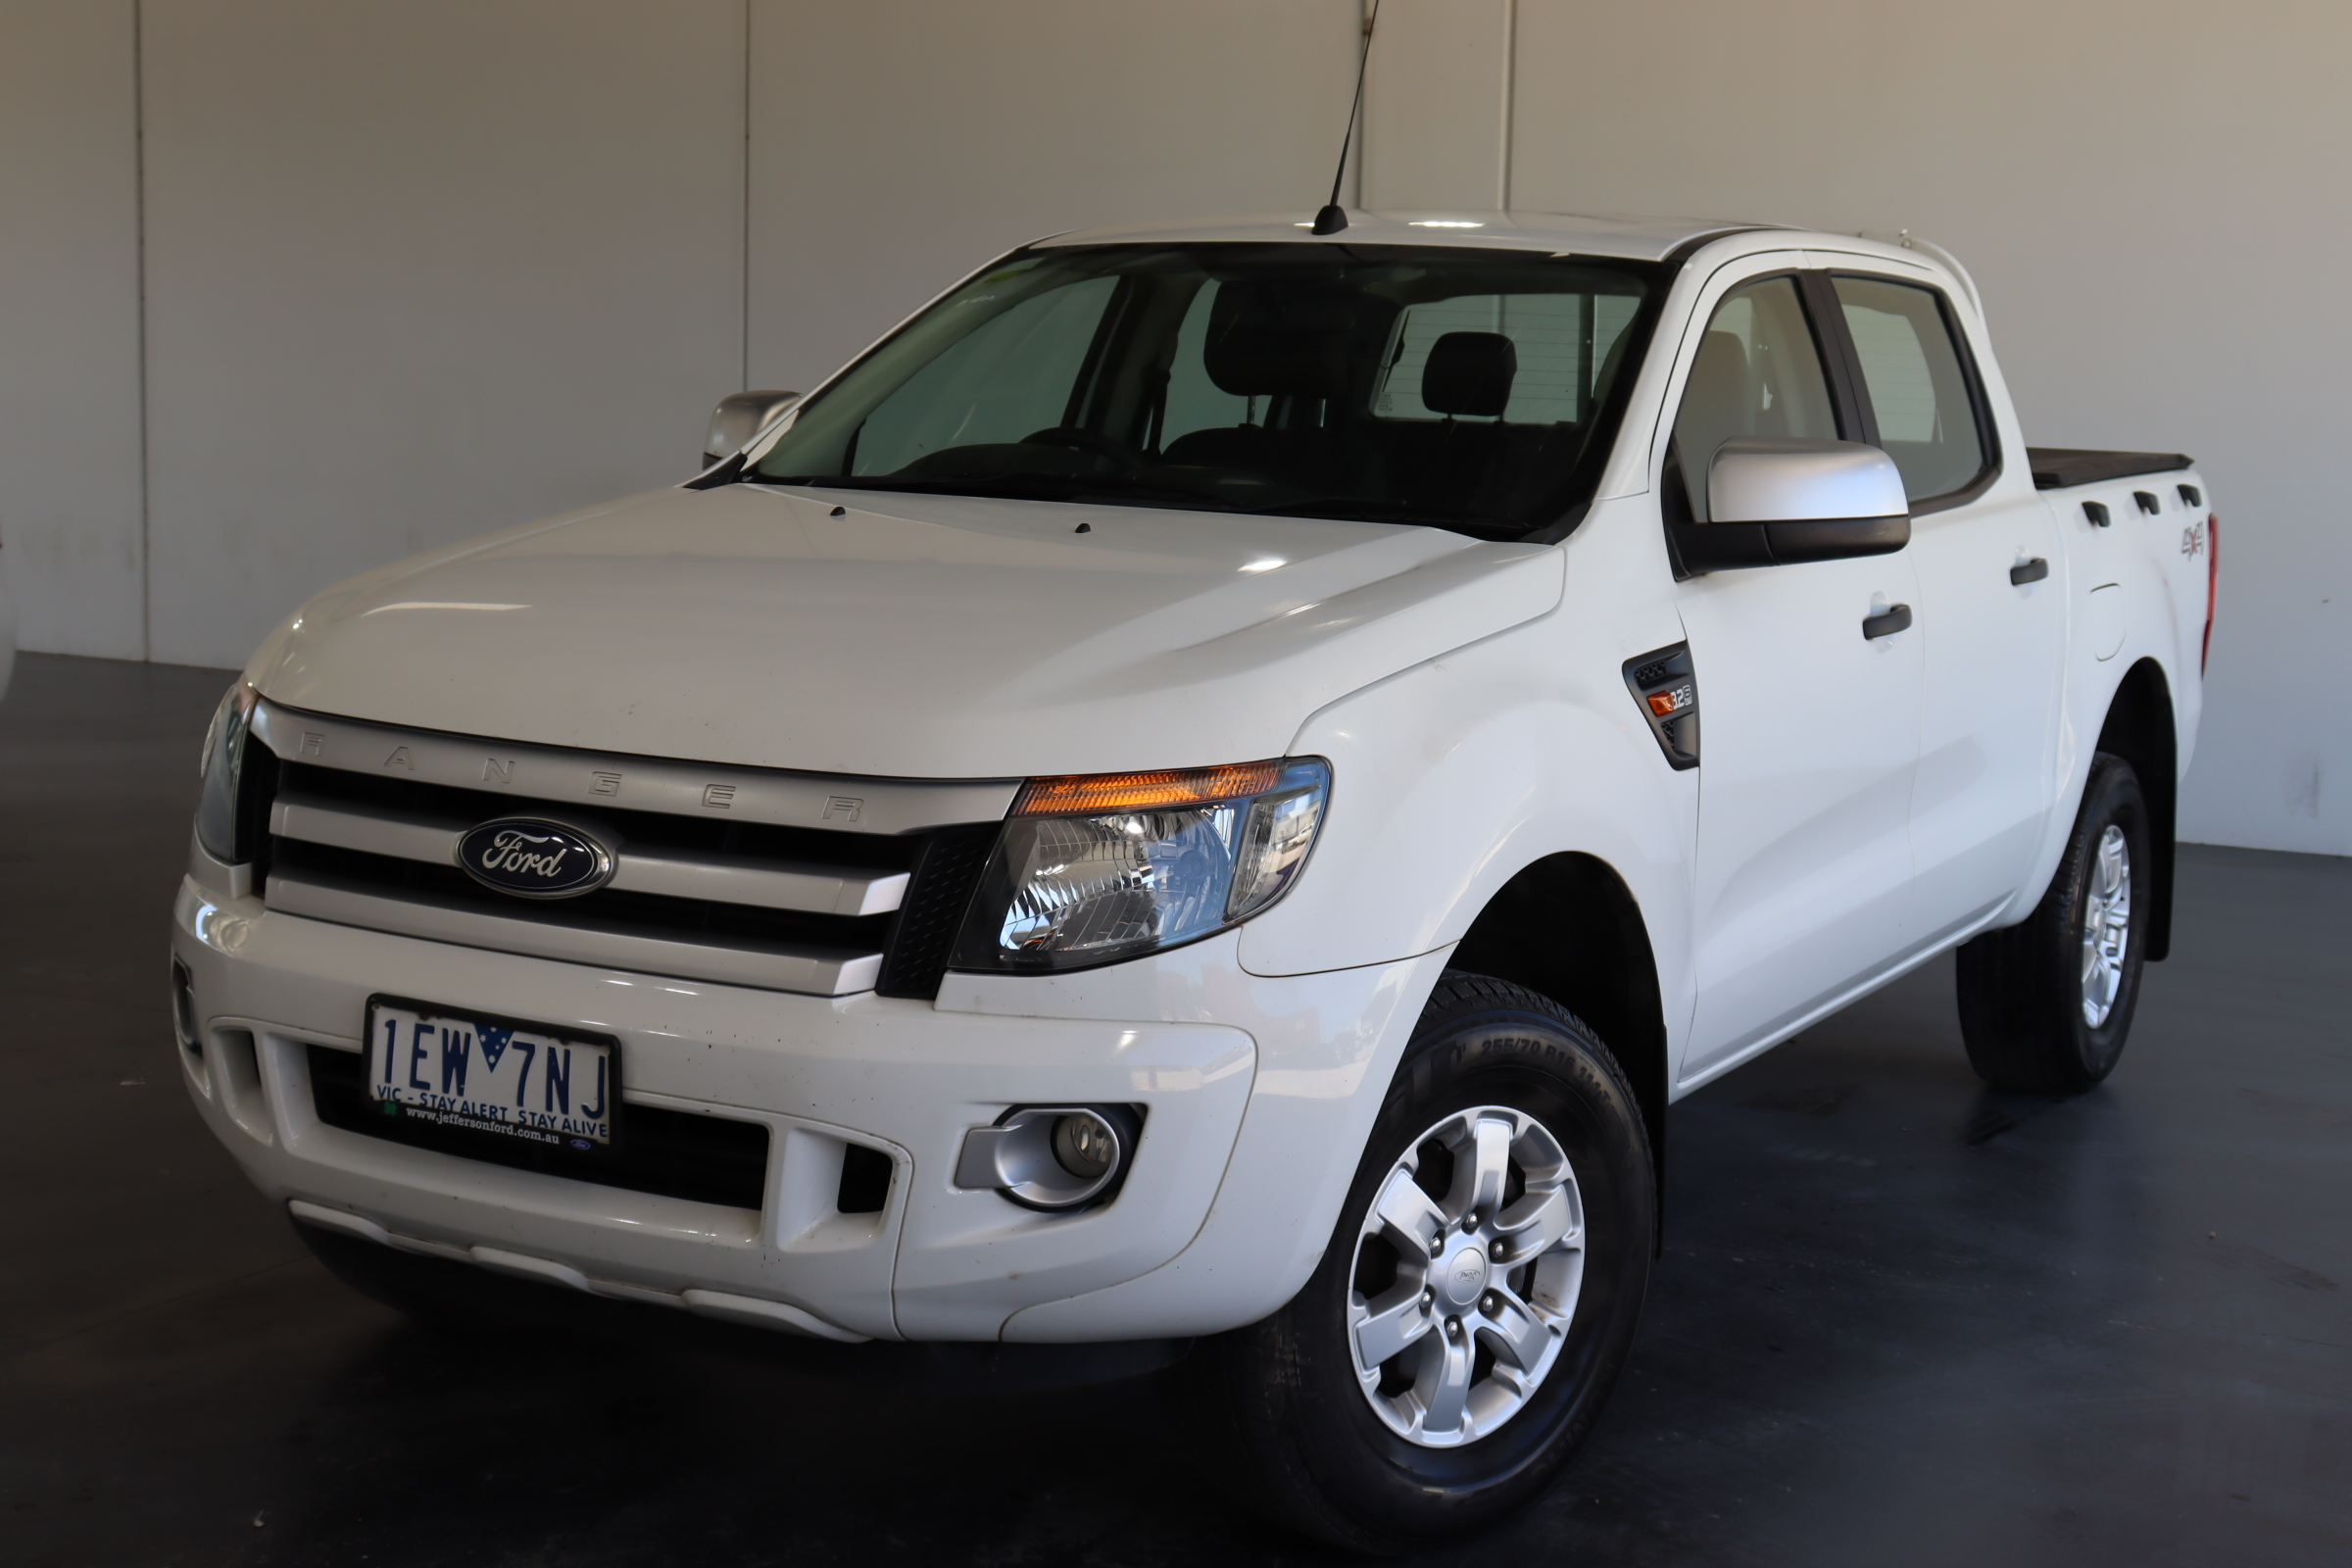 2015 Ford Ranger XLS 4X4 PX Turbo Diesel Automatic Dual Cab